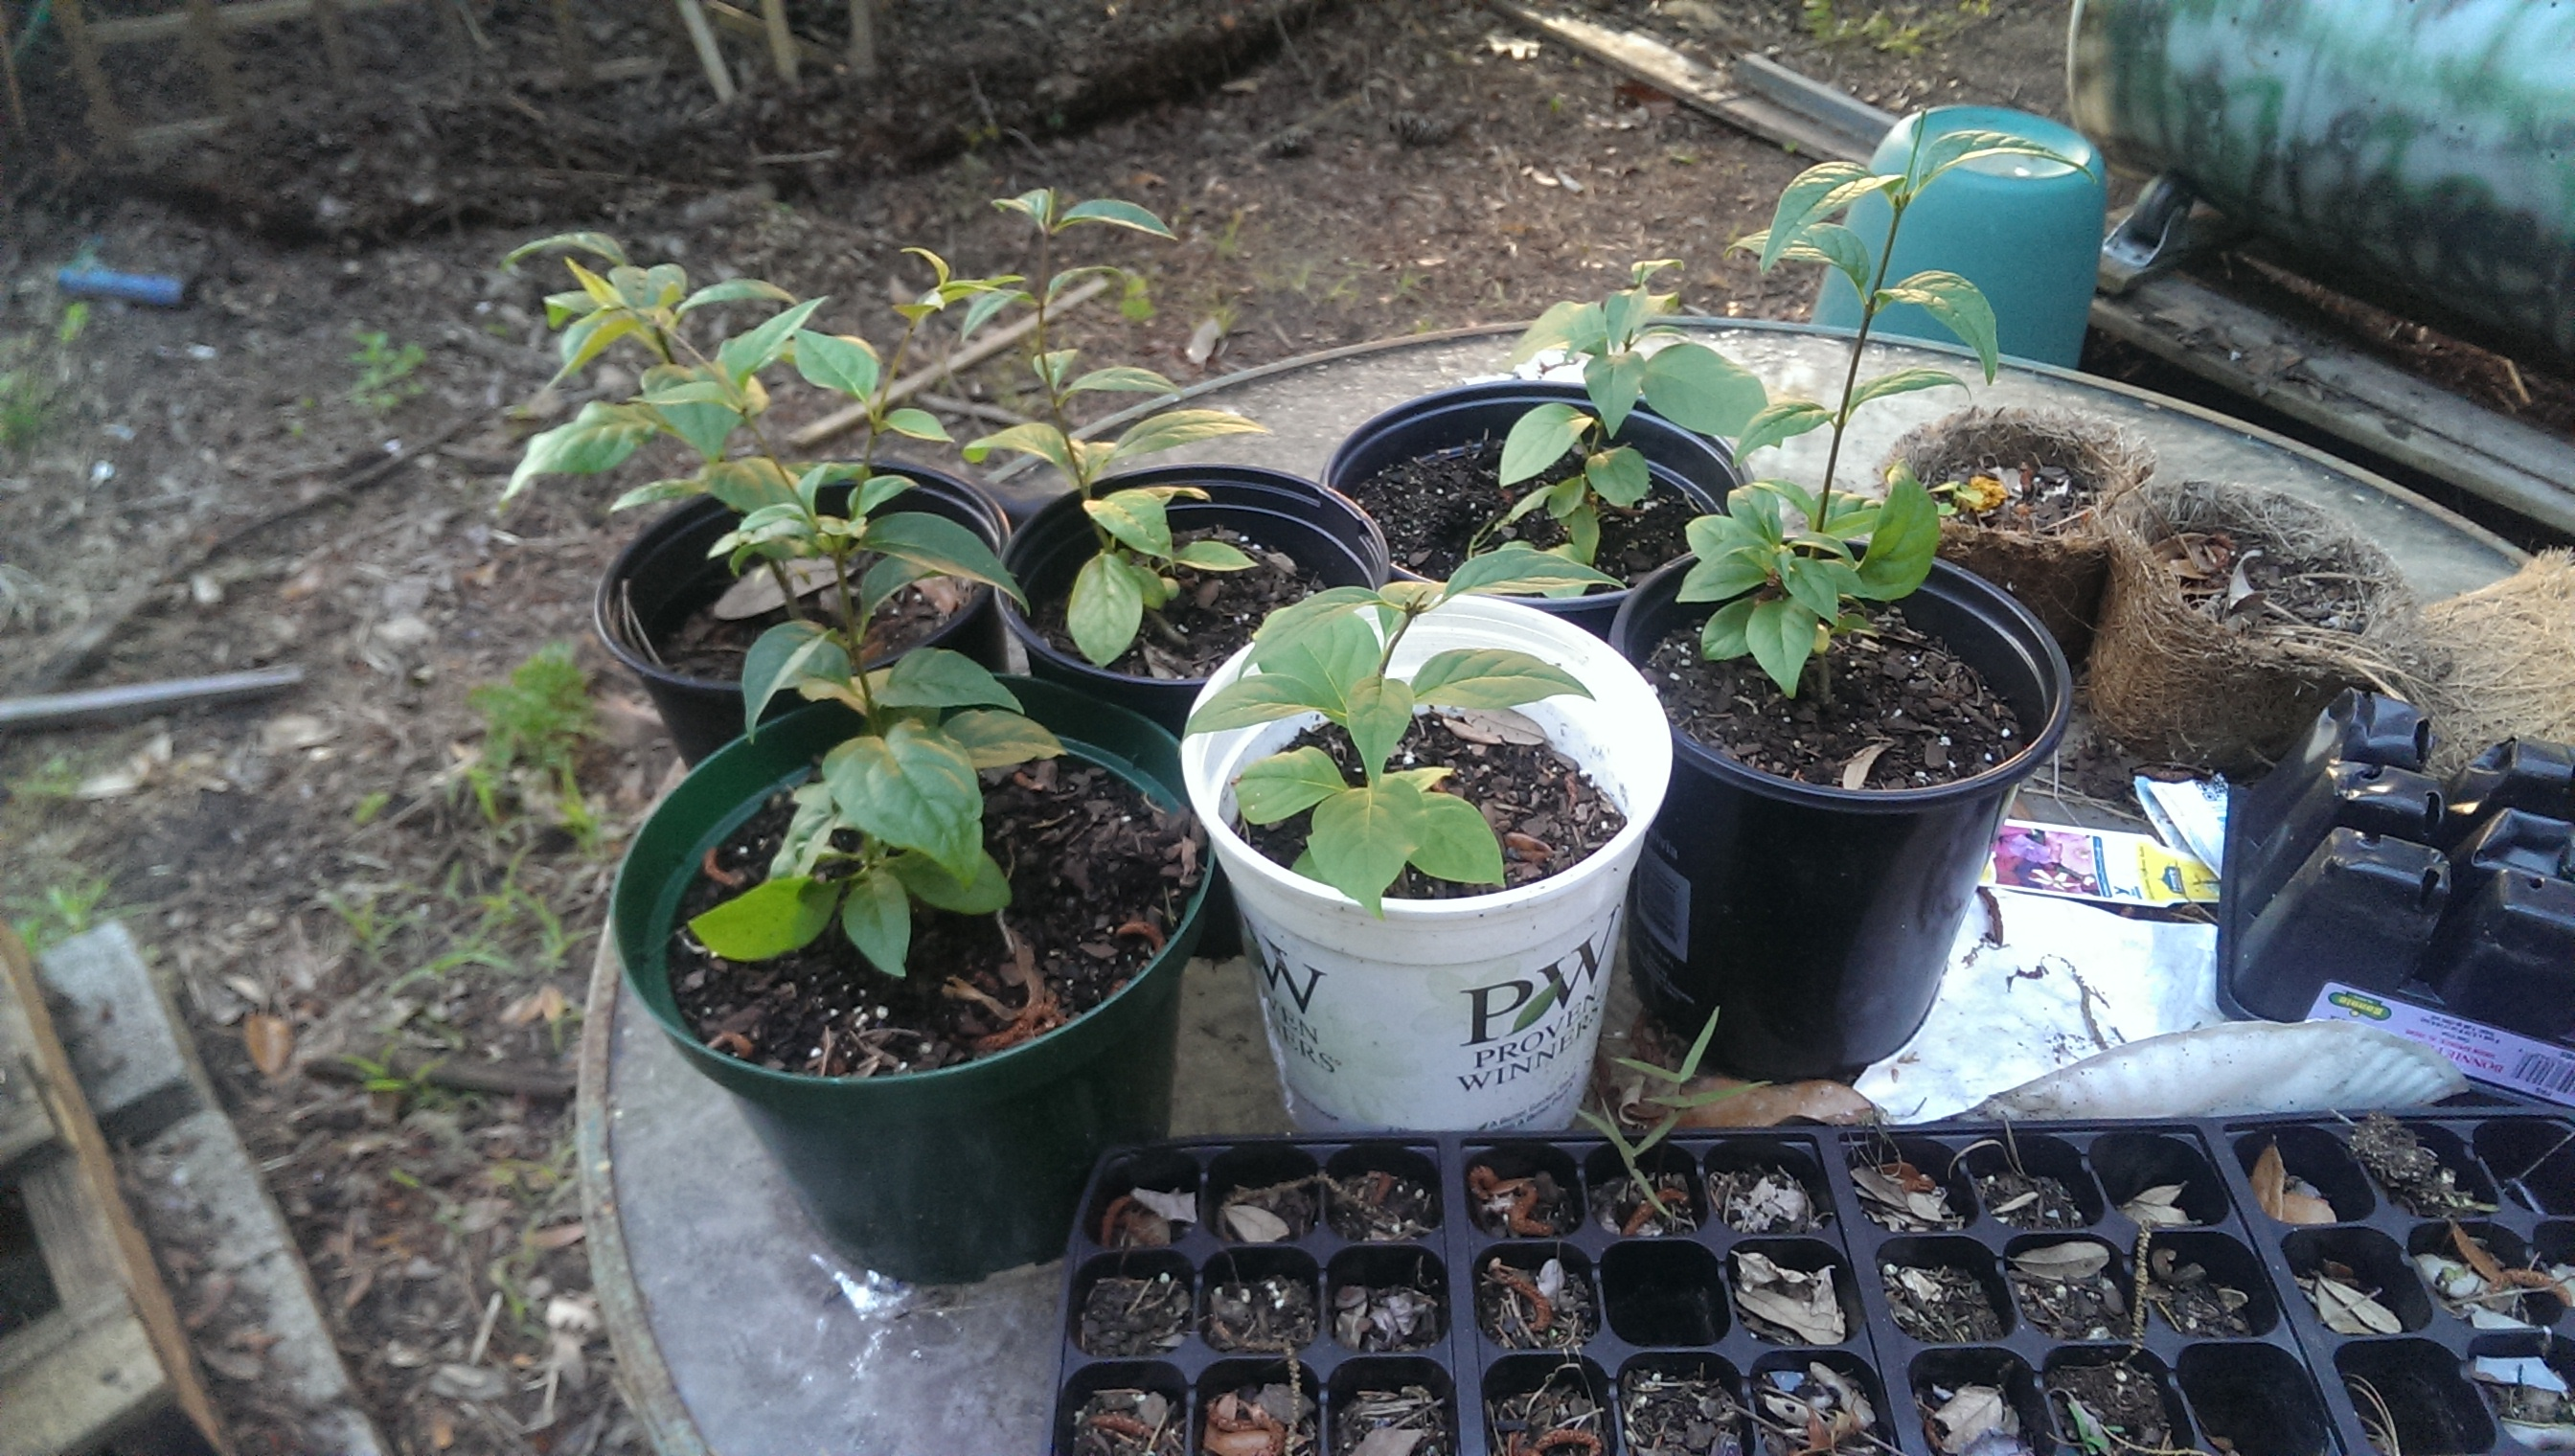 Blue Berry bush from seed